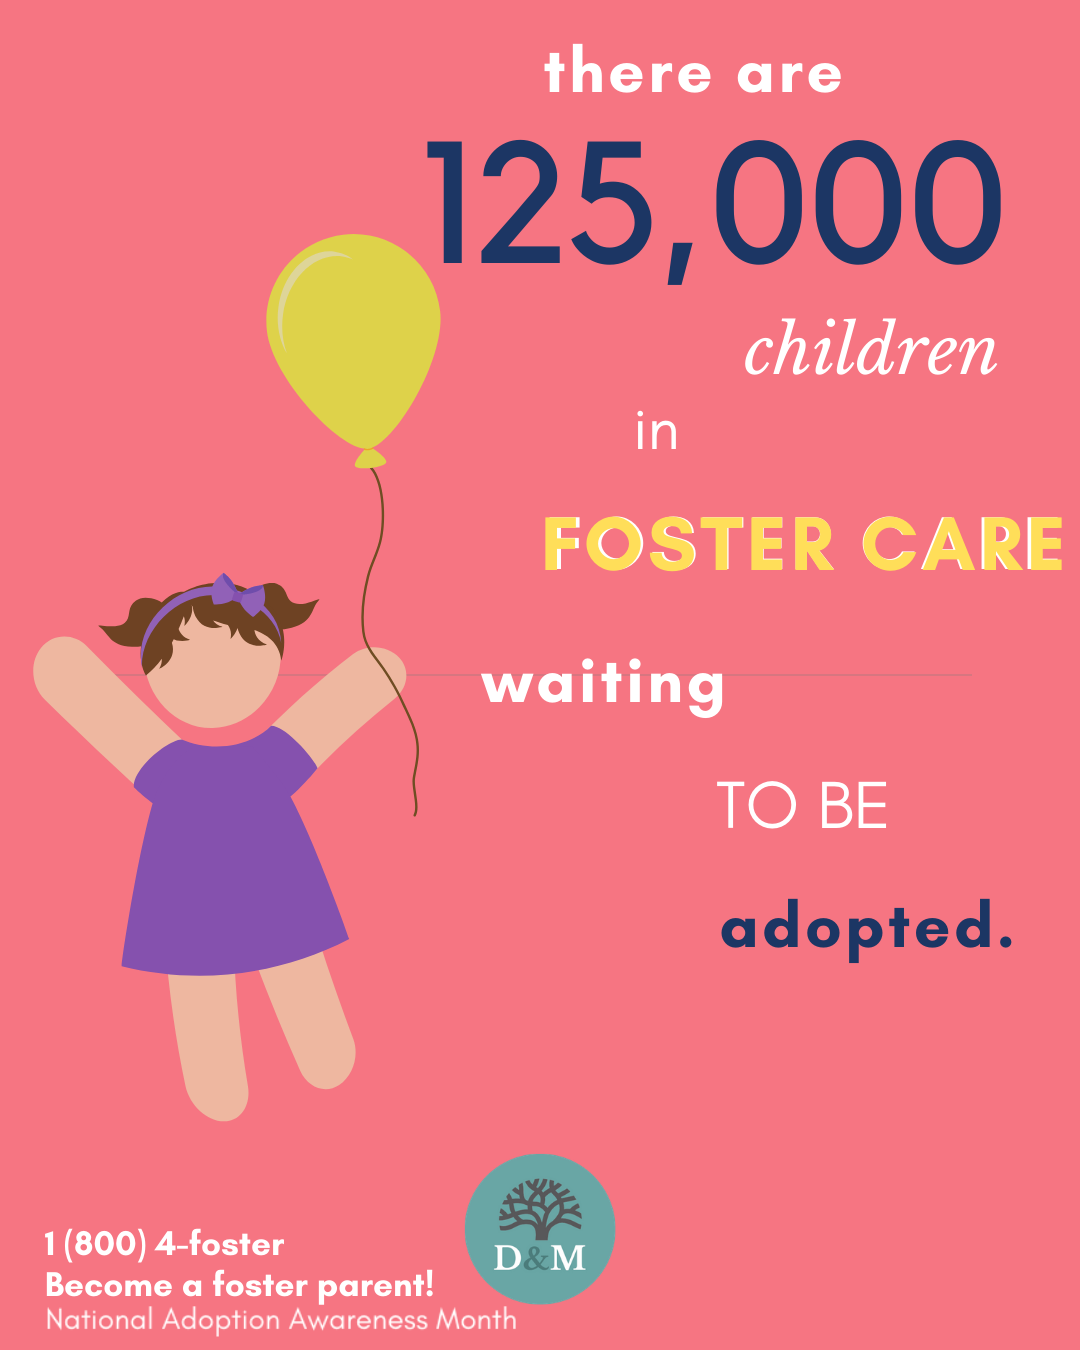 There are over 125,000 children in foster care waiting to be adopted